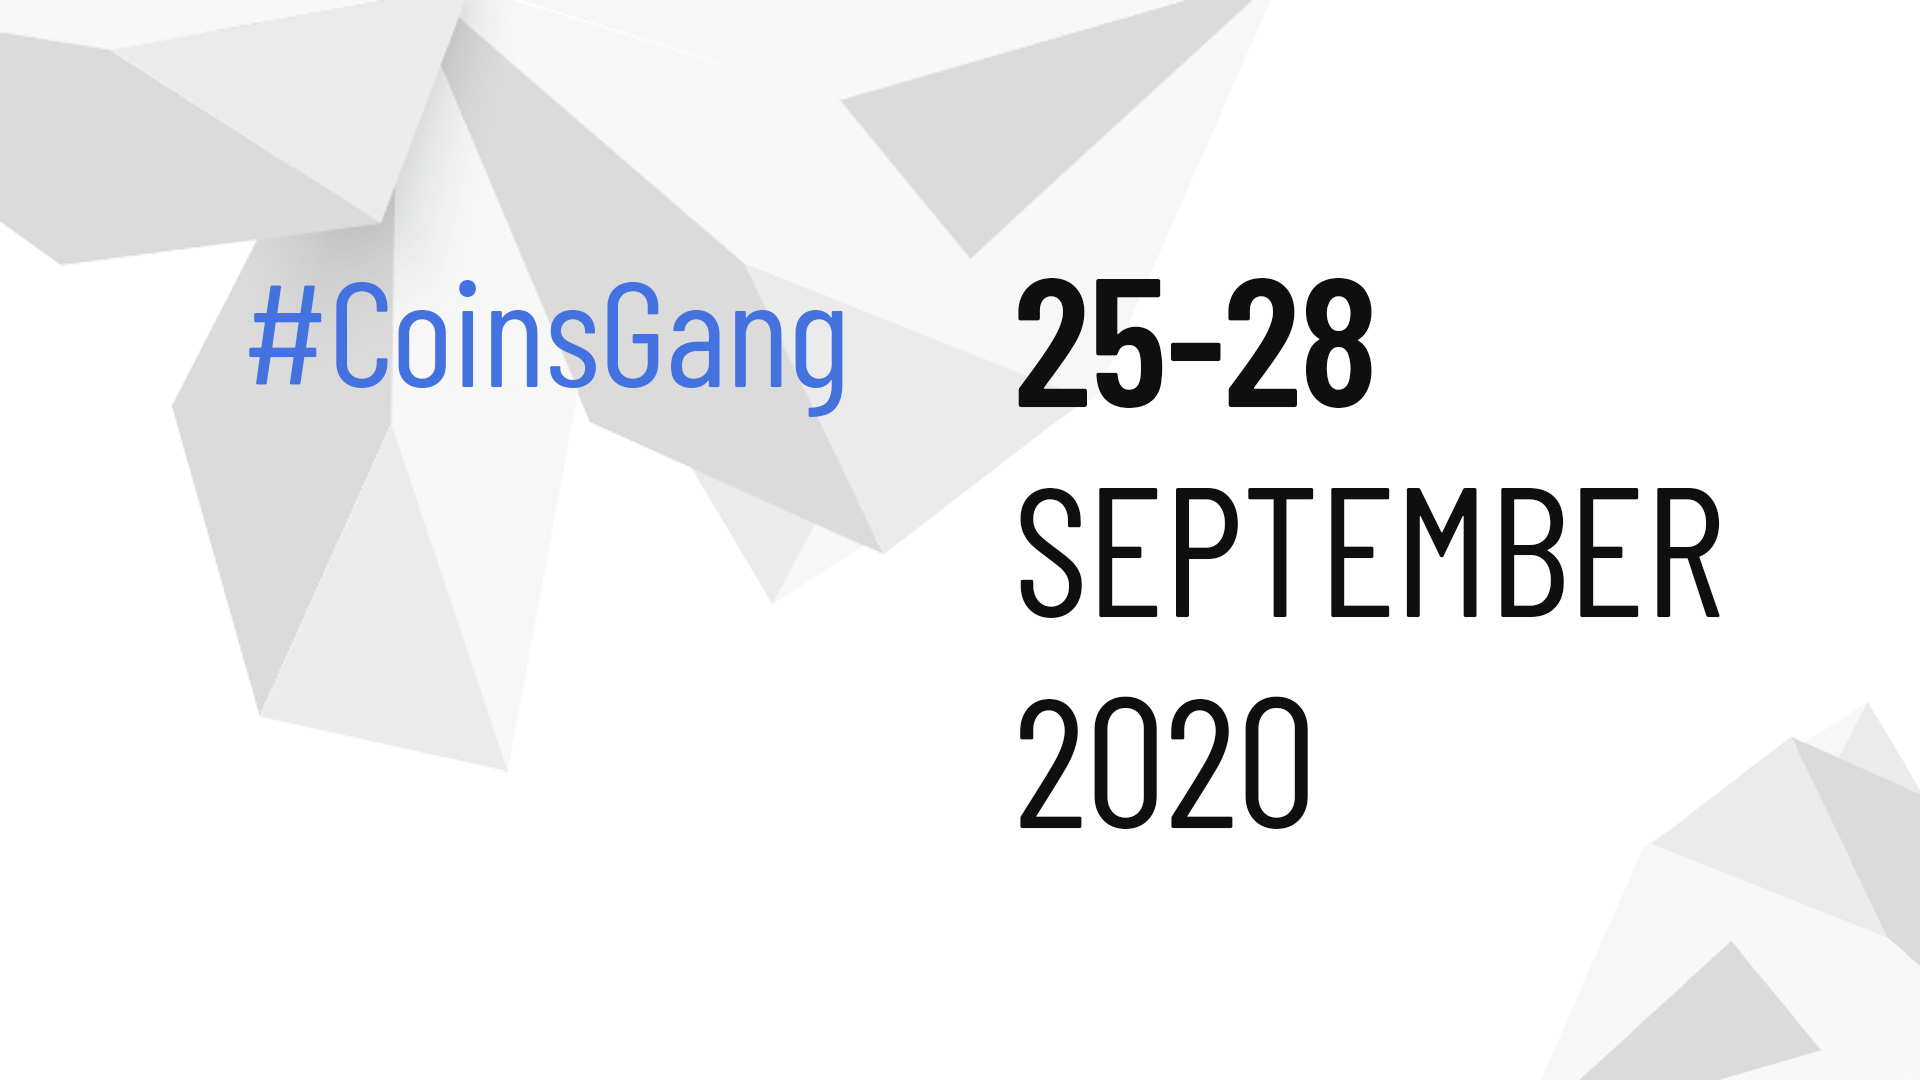 "COINSBANK BRAND NEW GLOBAL EVENT ""COINSGANG WEEKEND"" POSTPONED TO 25-28 SEPTEMBER DUE TO COVID-19"